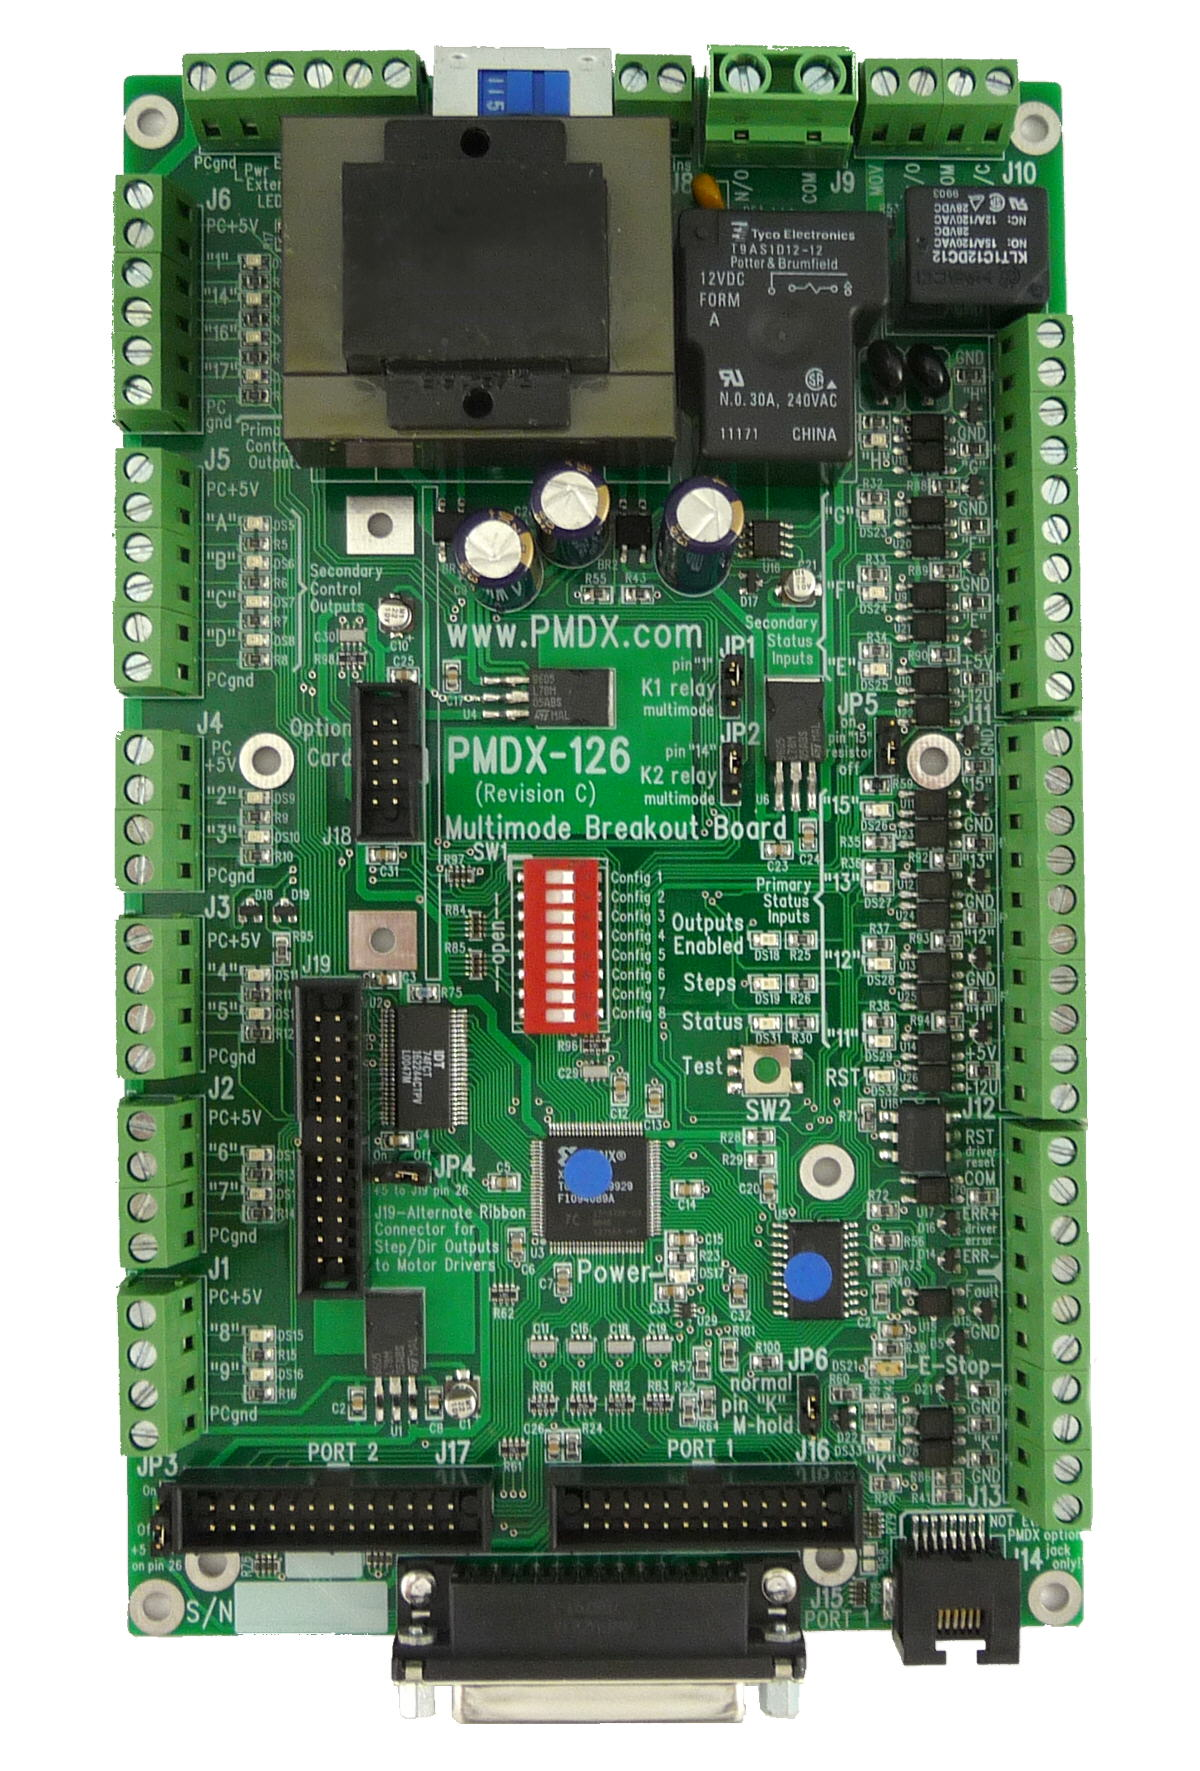 5 axis cnc breakout board wiring diagram ukulele songs with chord diagrams pmdx 126 23 images